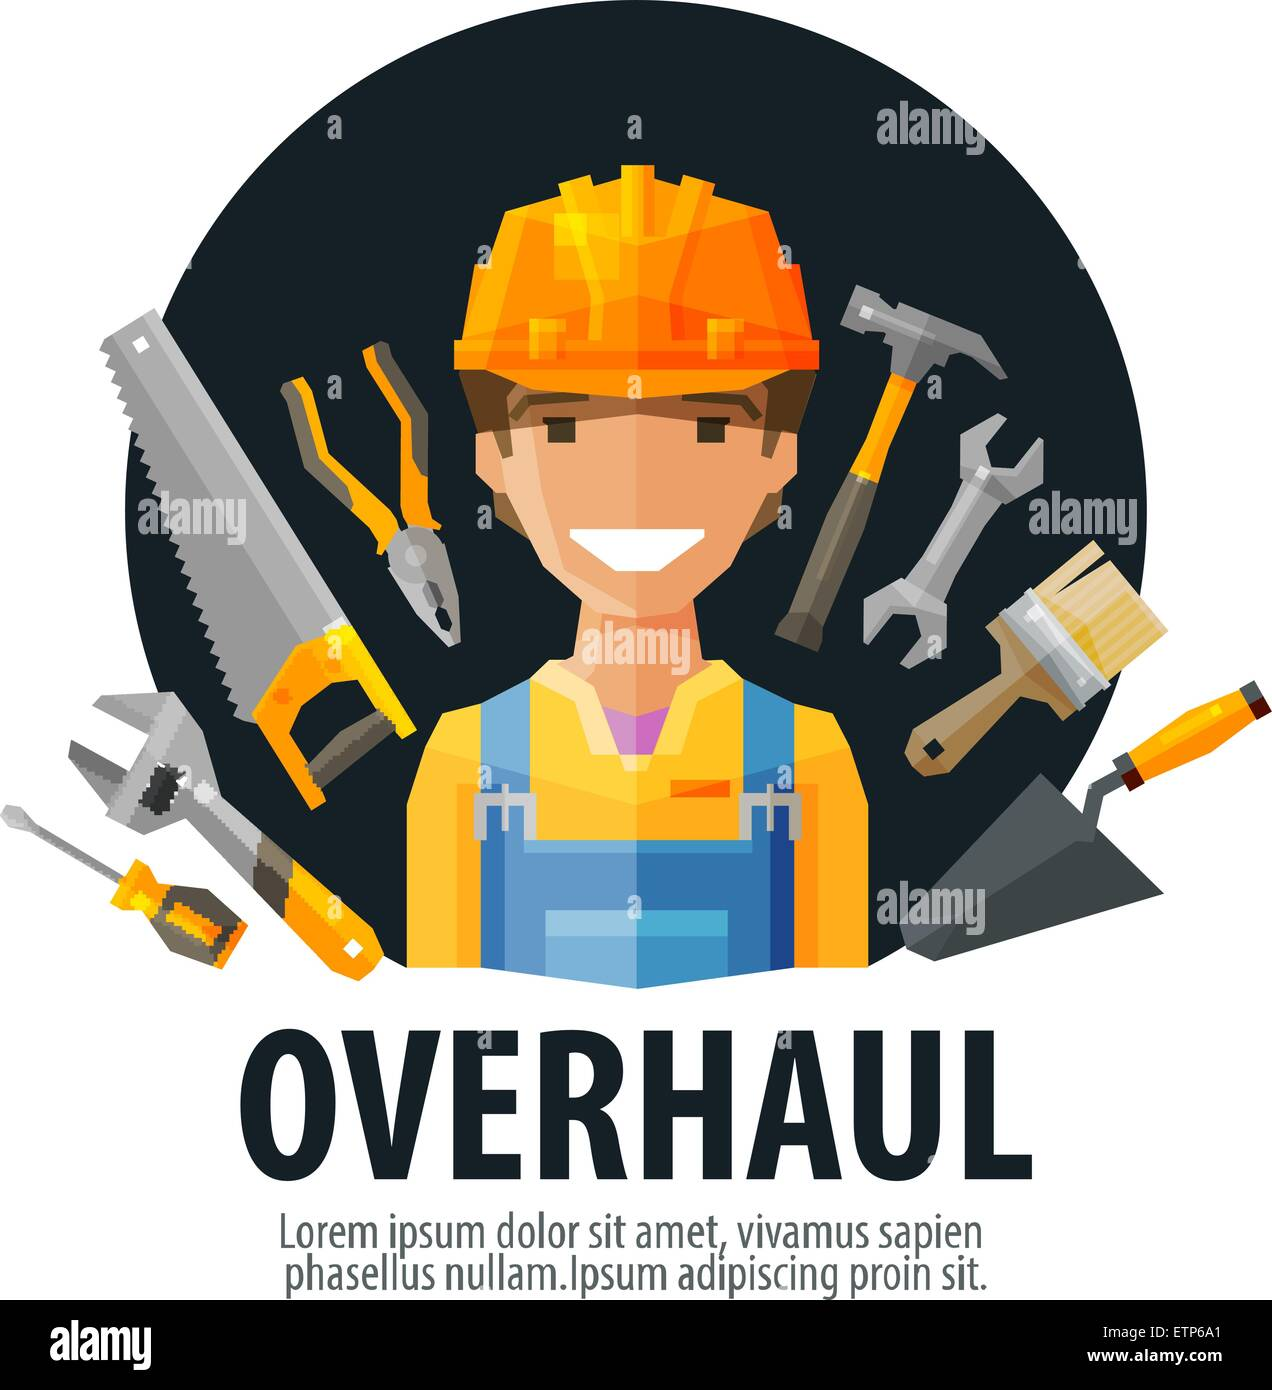 overhaul vector logo design template. worker and tools or builder, constructor, construction company icon - Stock Image